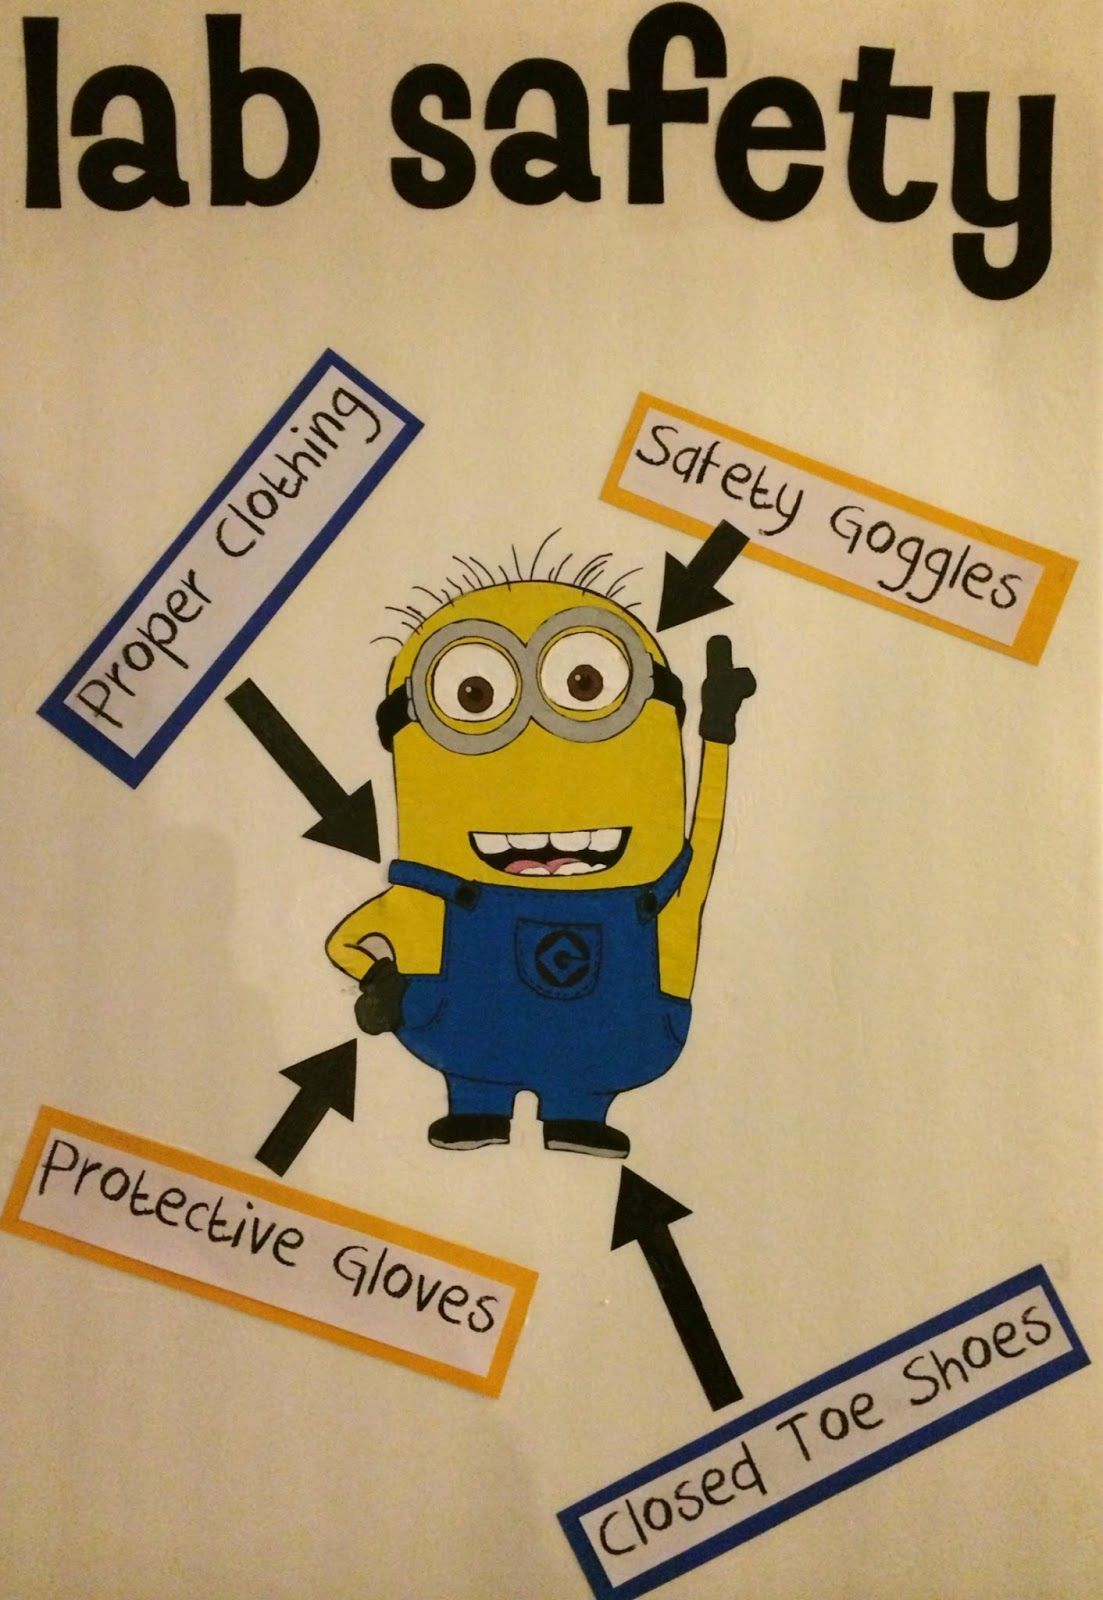 d8404b82add These minions are a good way to teach science safety and to decorate my  classroom.